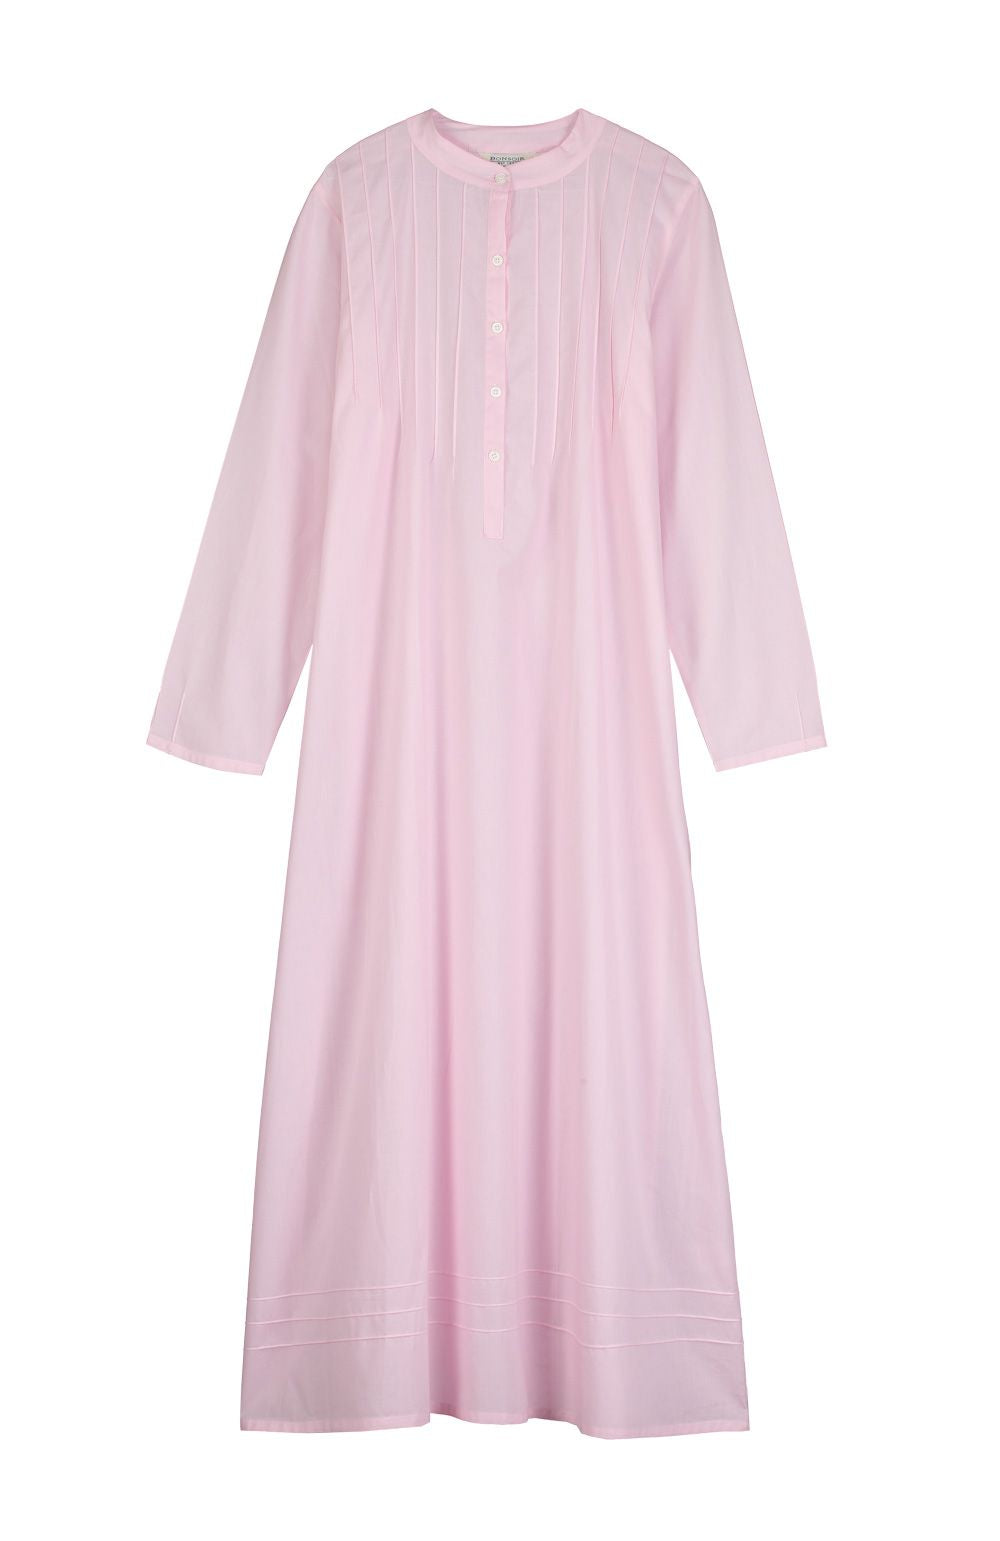 Women's Victoria Long Sleeve Pink Nightdress | Bonsoir of London